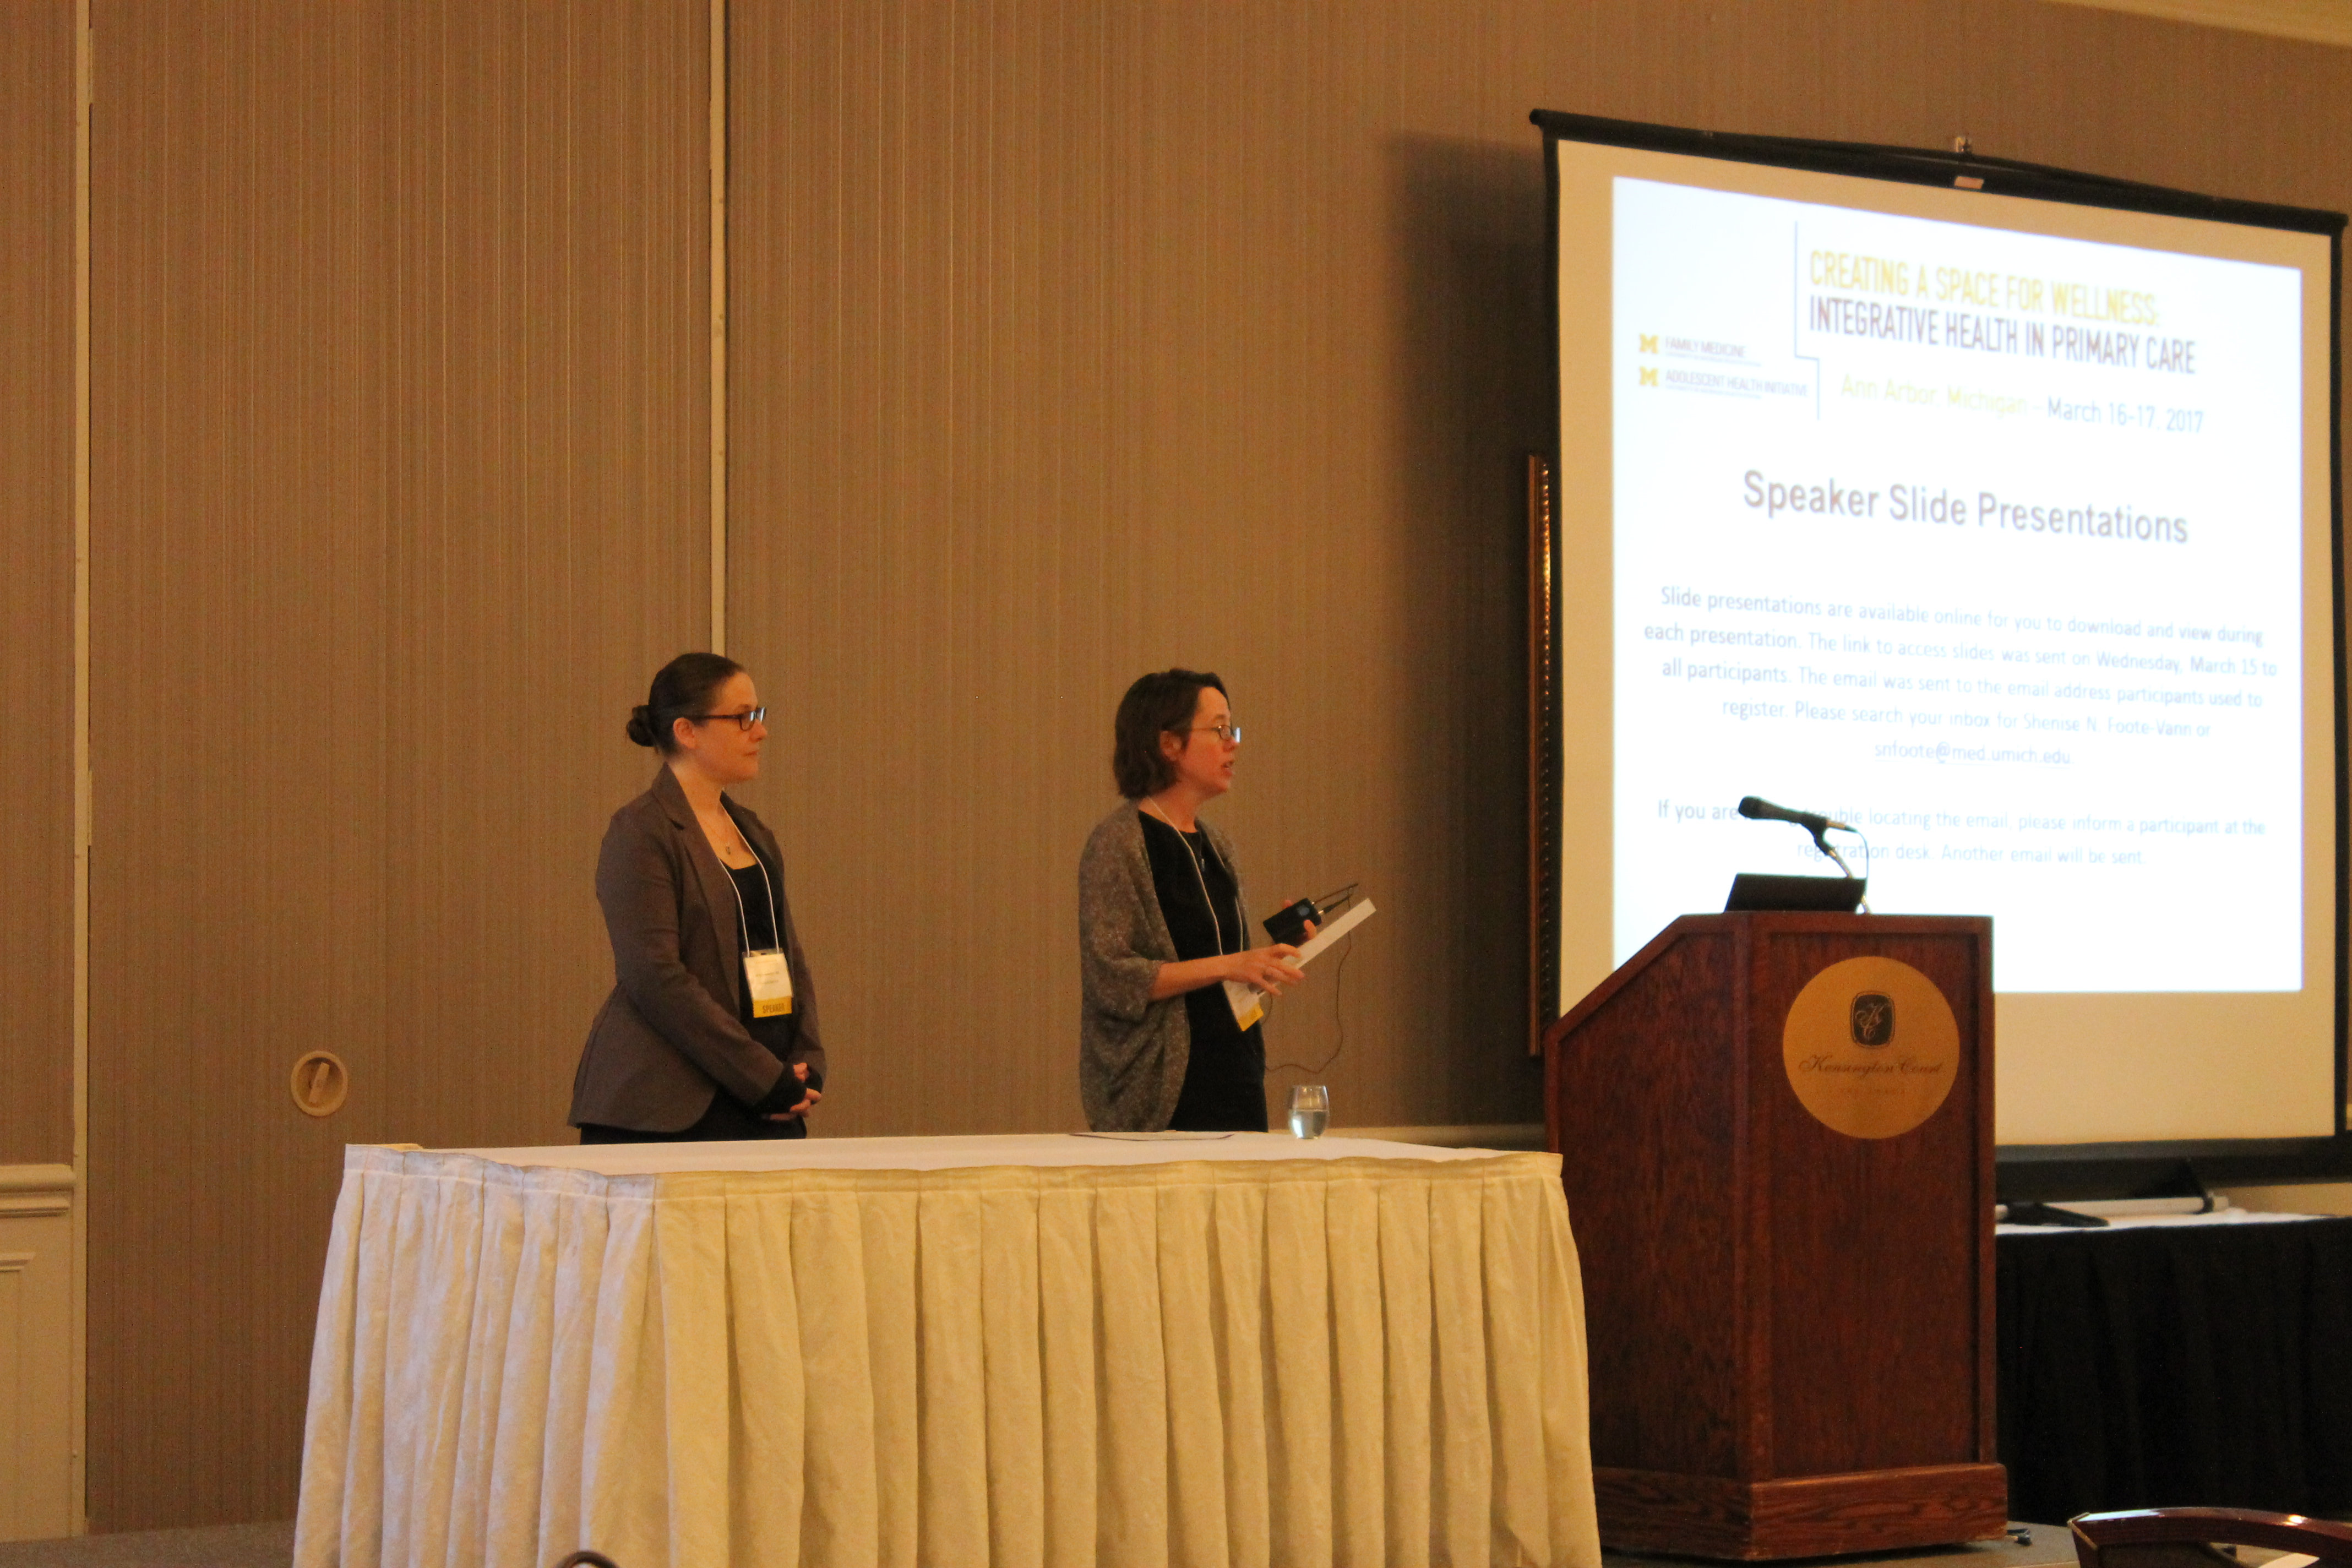 Drs. Jill Schneiderhan and Amy Locke stand on a stage in front of a screen giving a presentation.